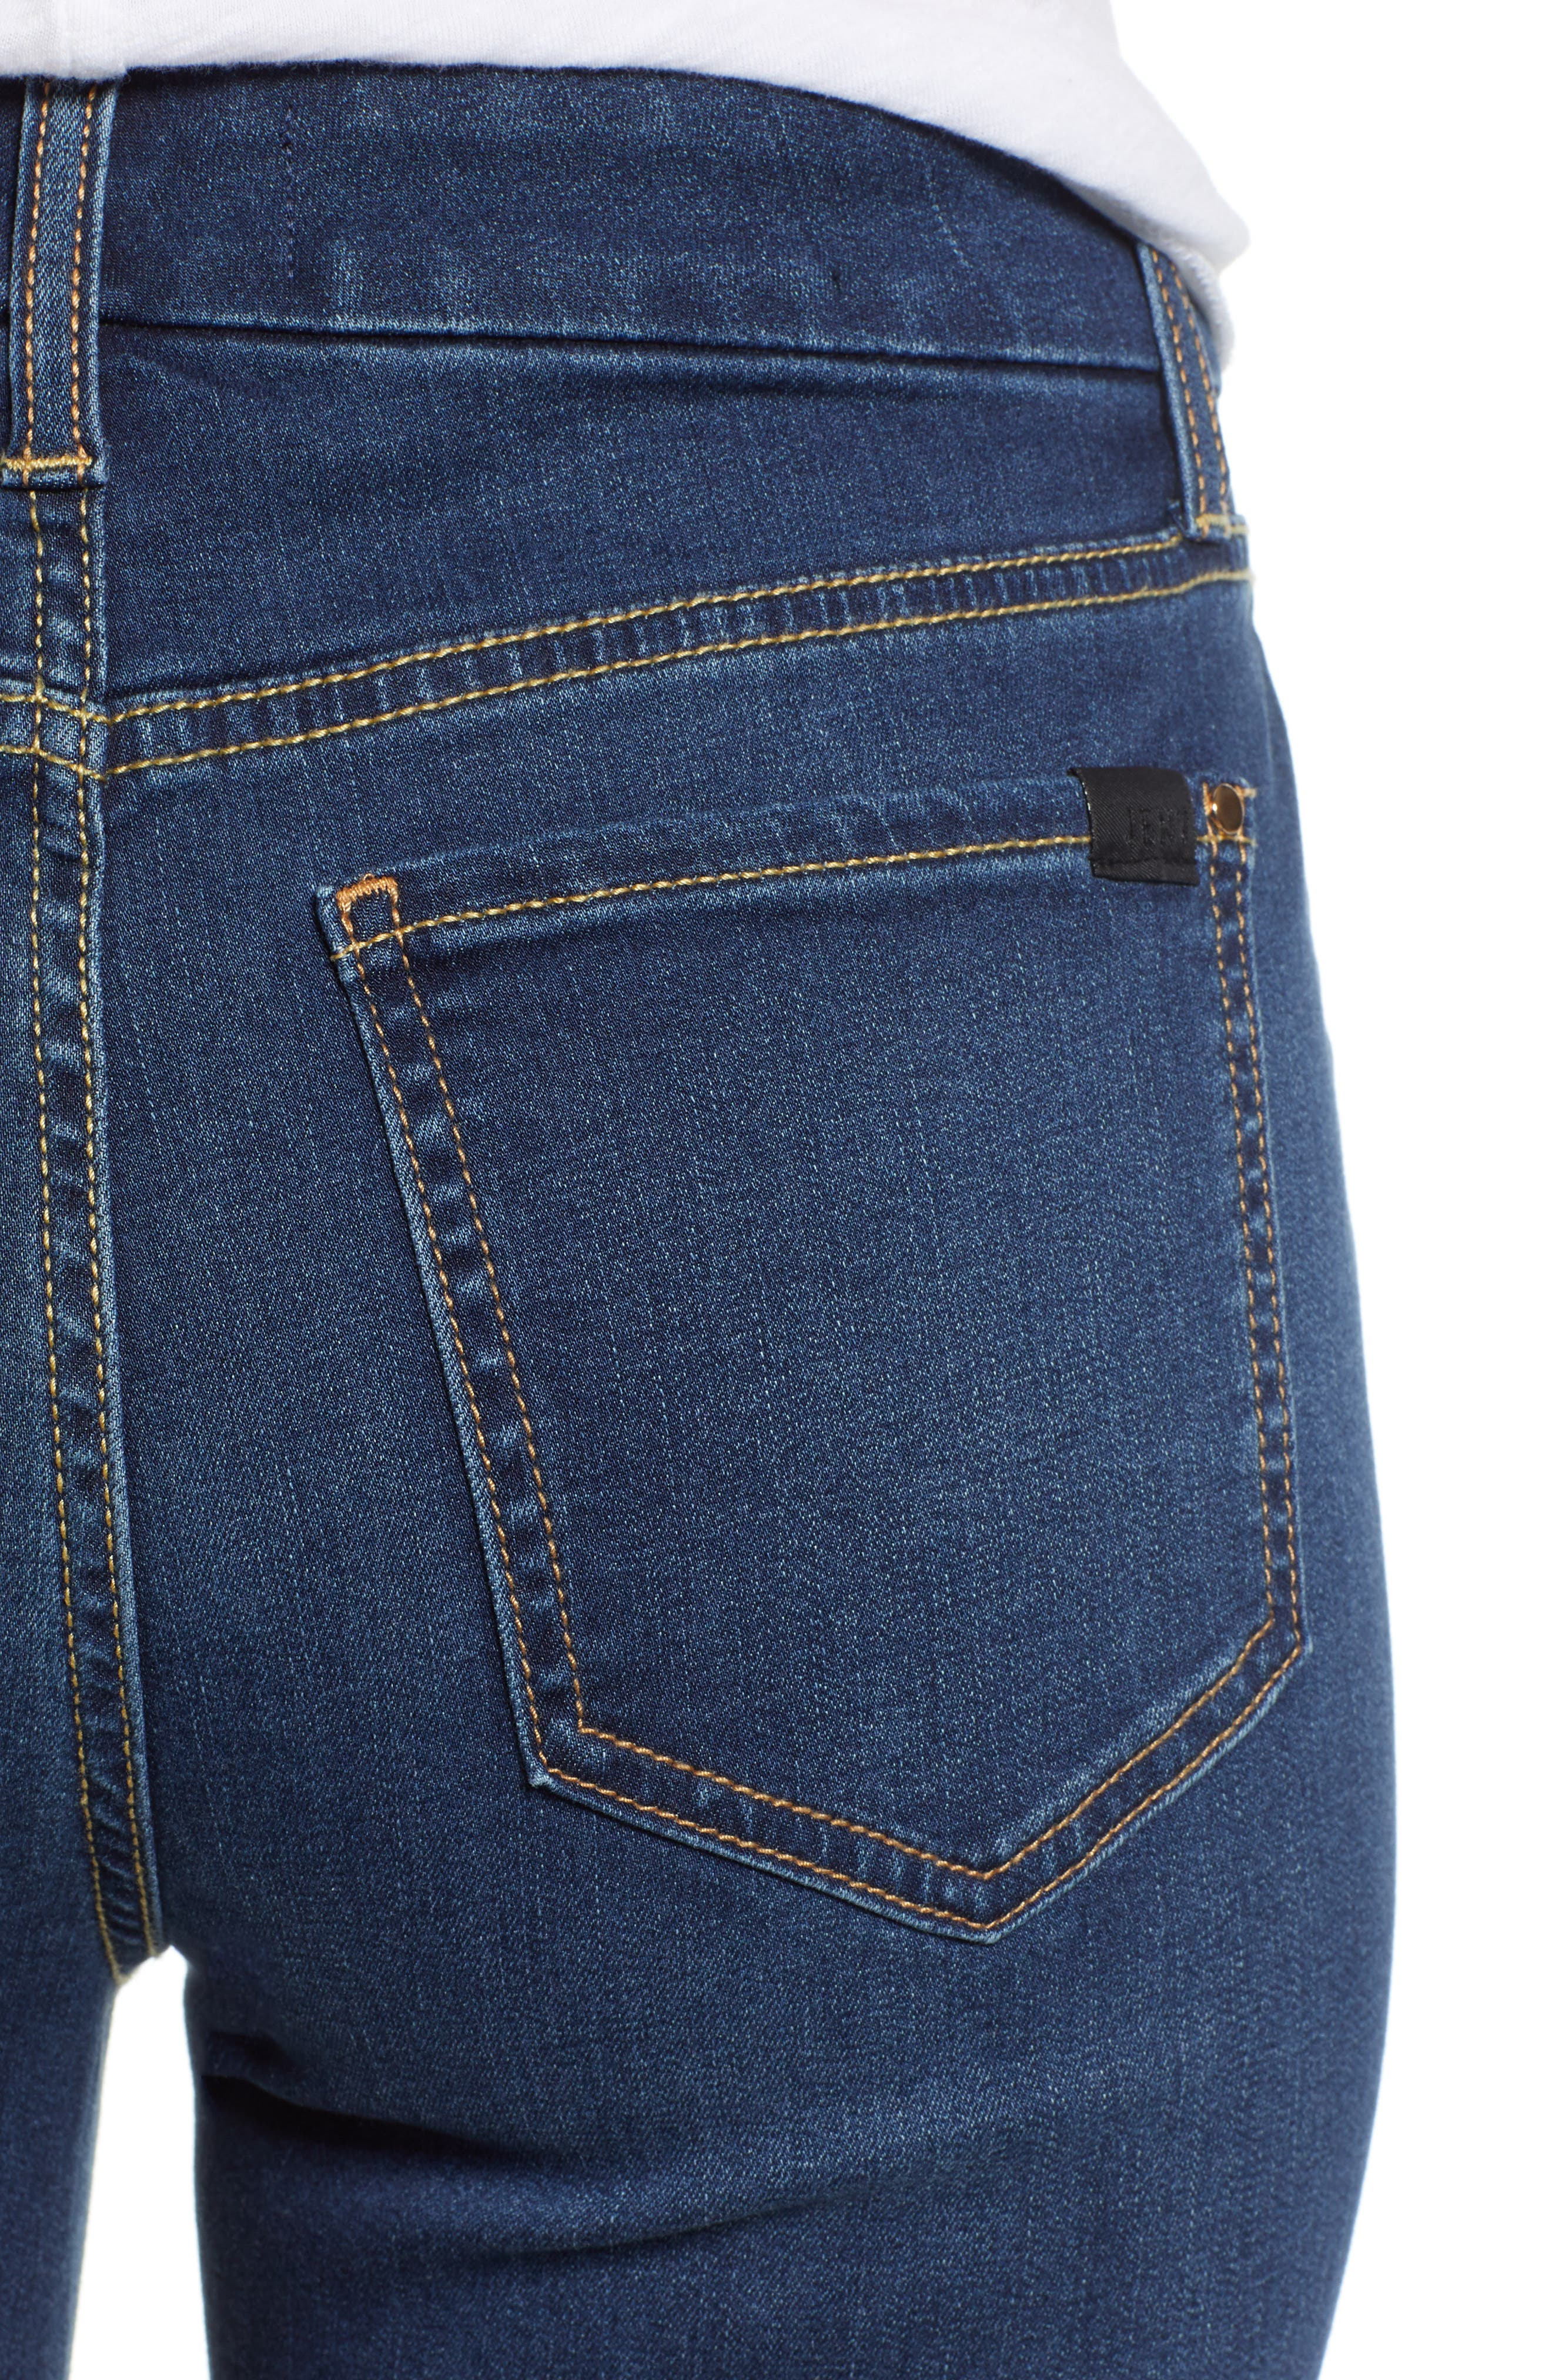 JEN7 BY 7 FOR ALL MANKIND, Slim Bootcut Jeans, Alternate thumbnail 5, color, CLASSIC MEDIUM BLUE